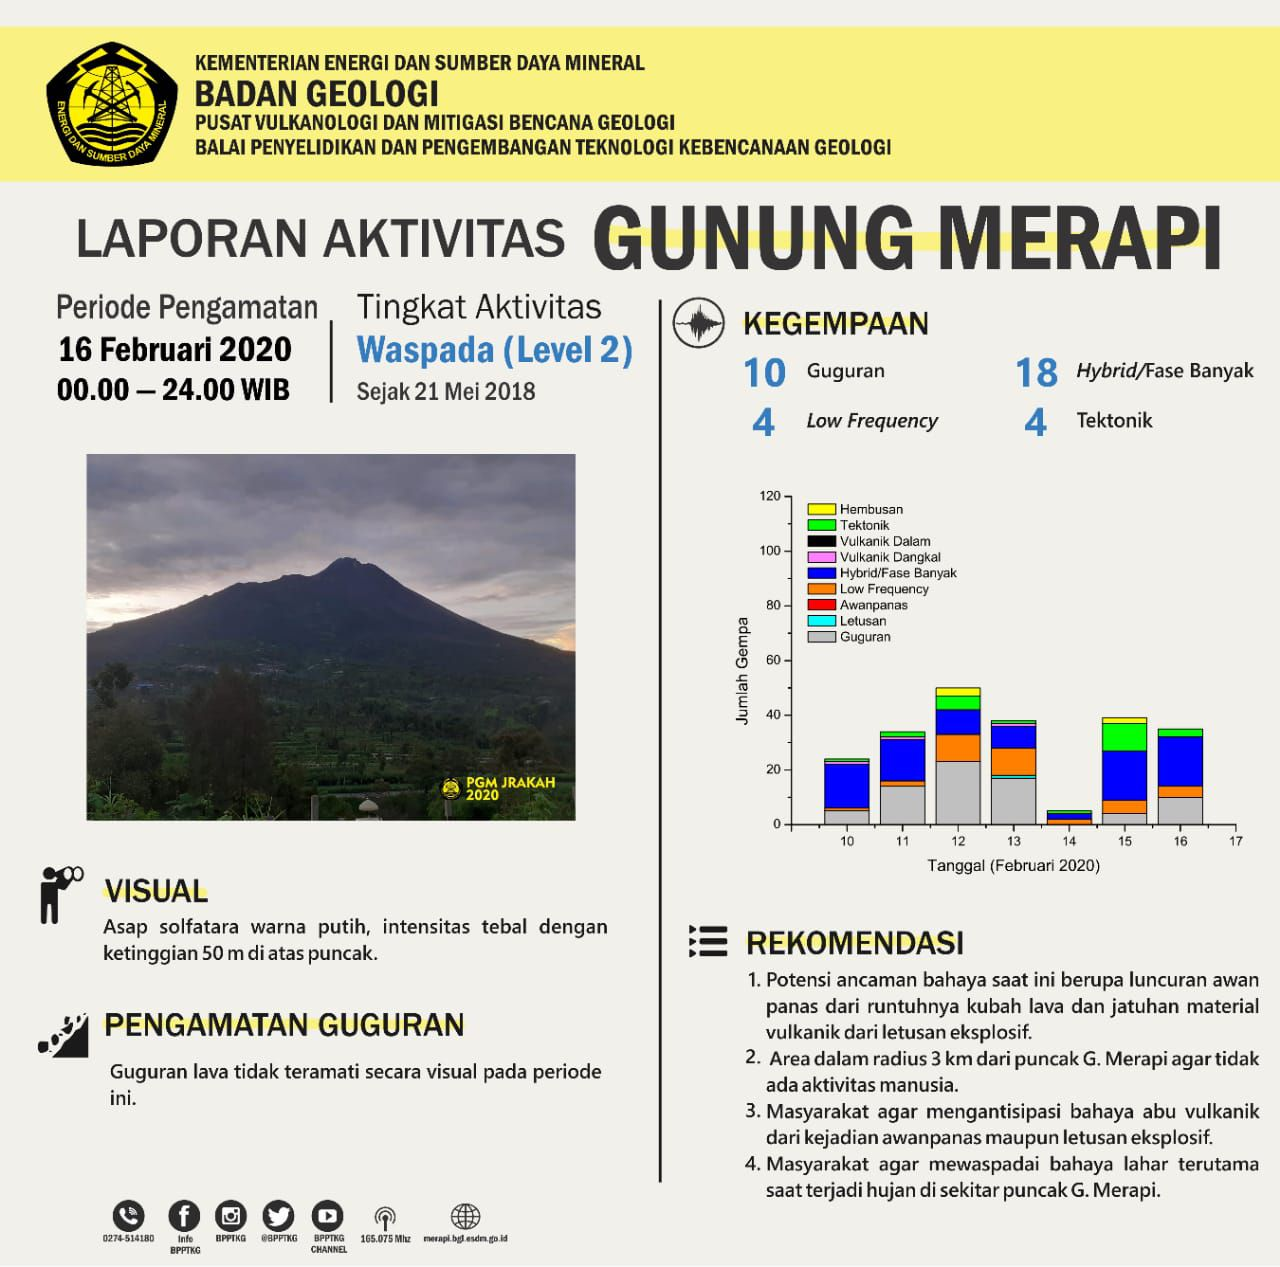 Merapi - summary of the activity from 16.02.2020 / 00h - 24h